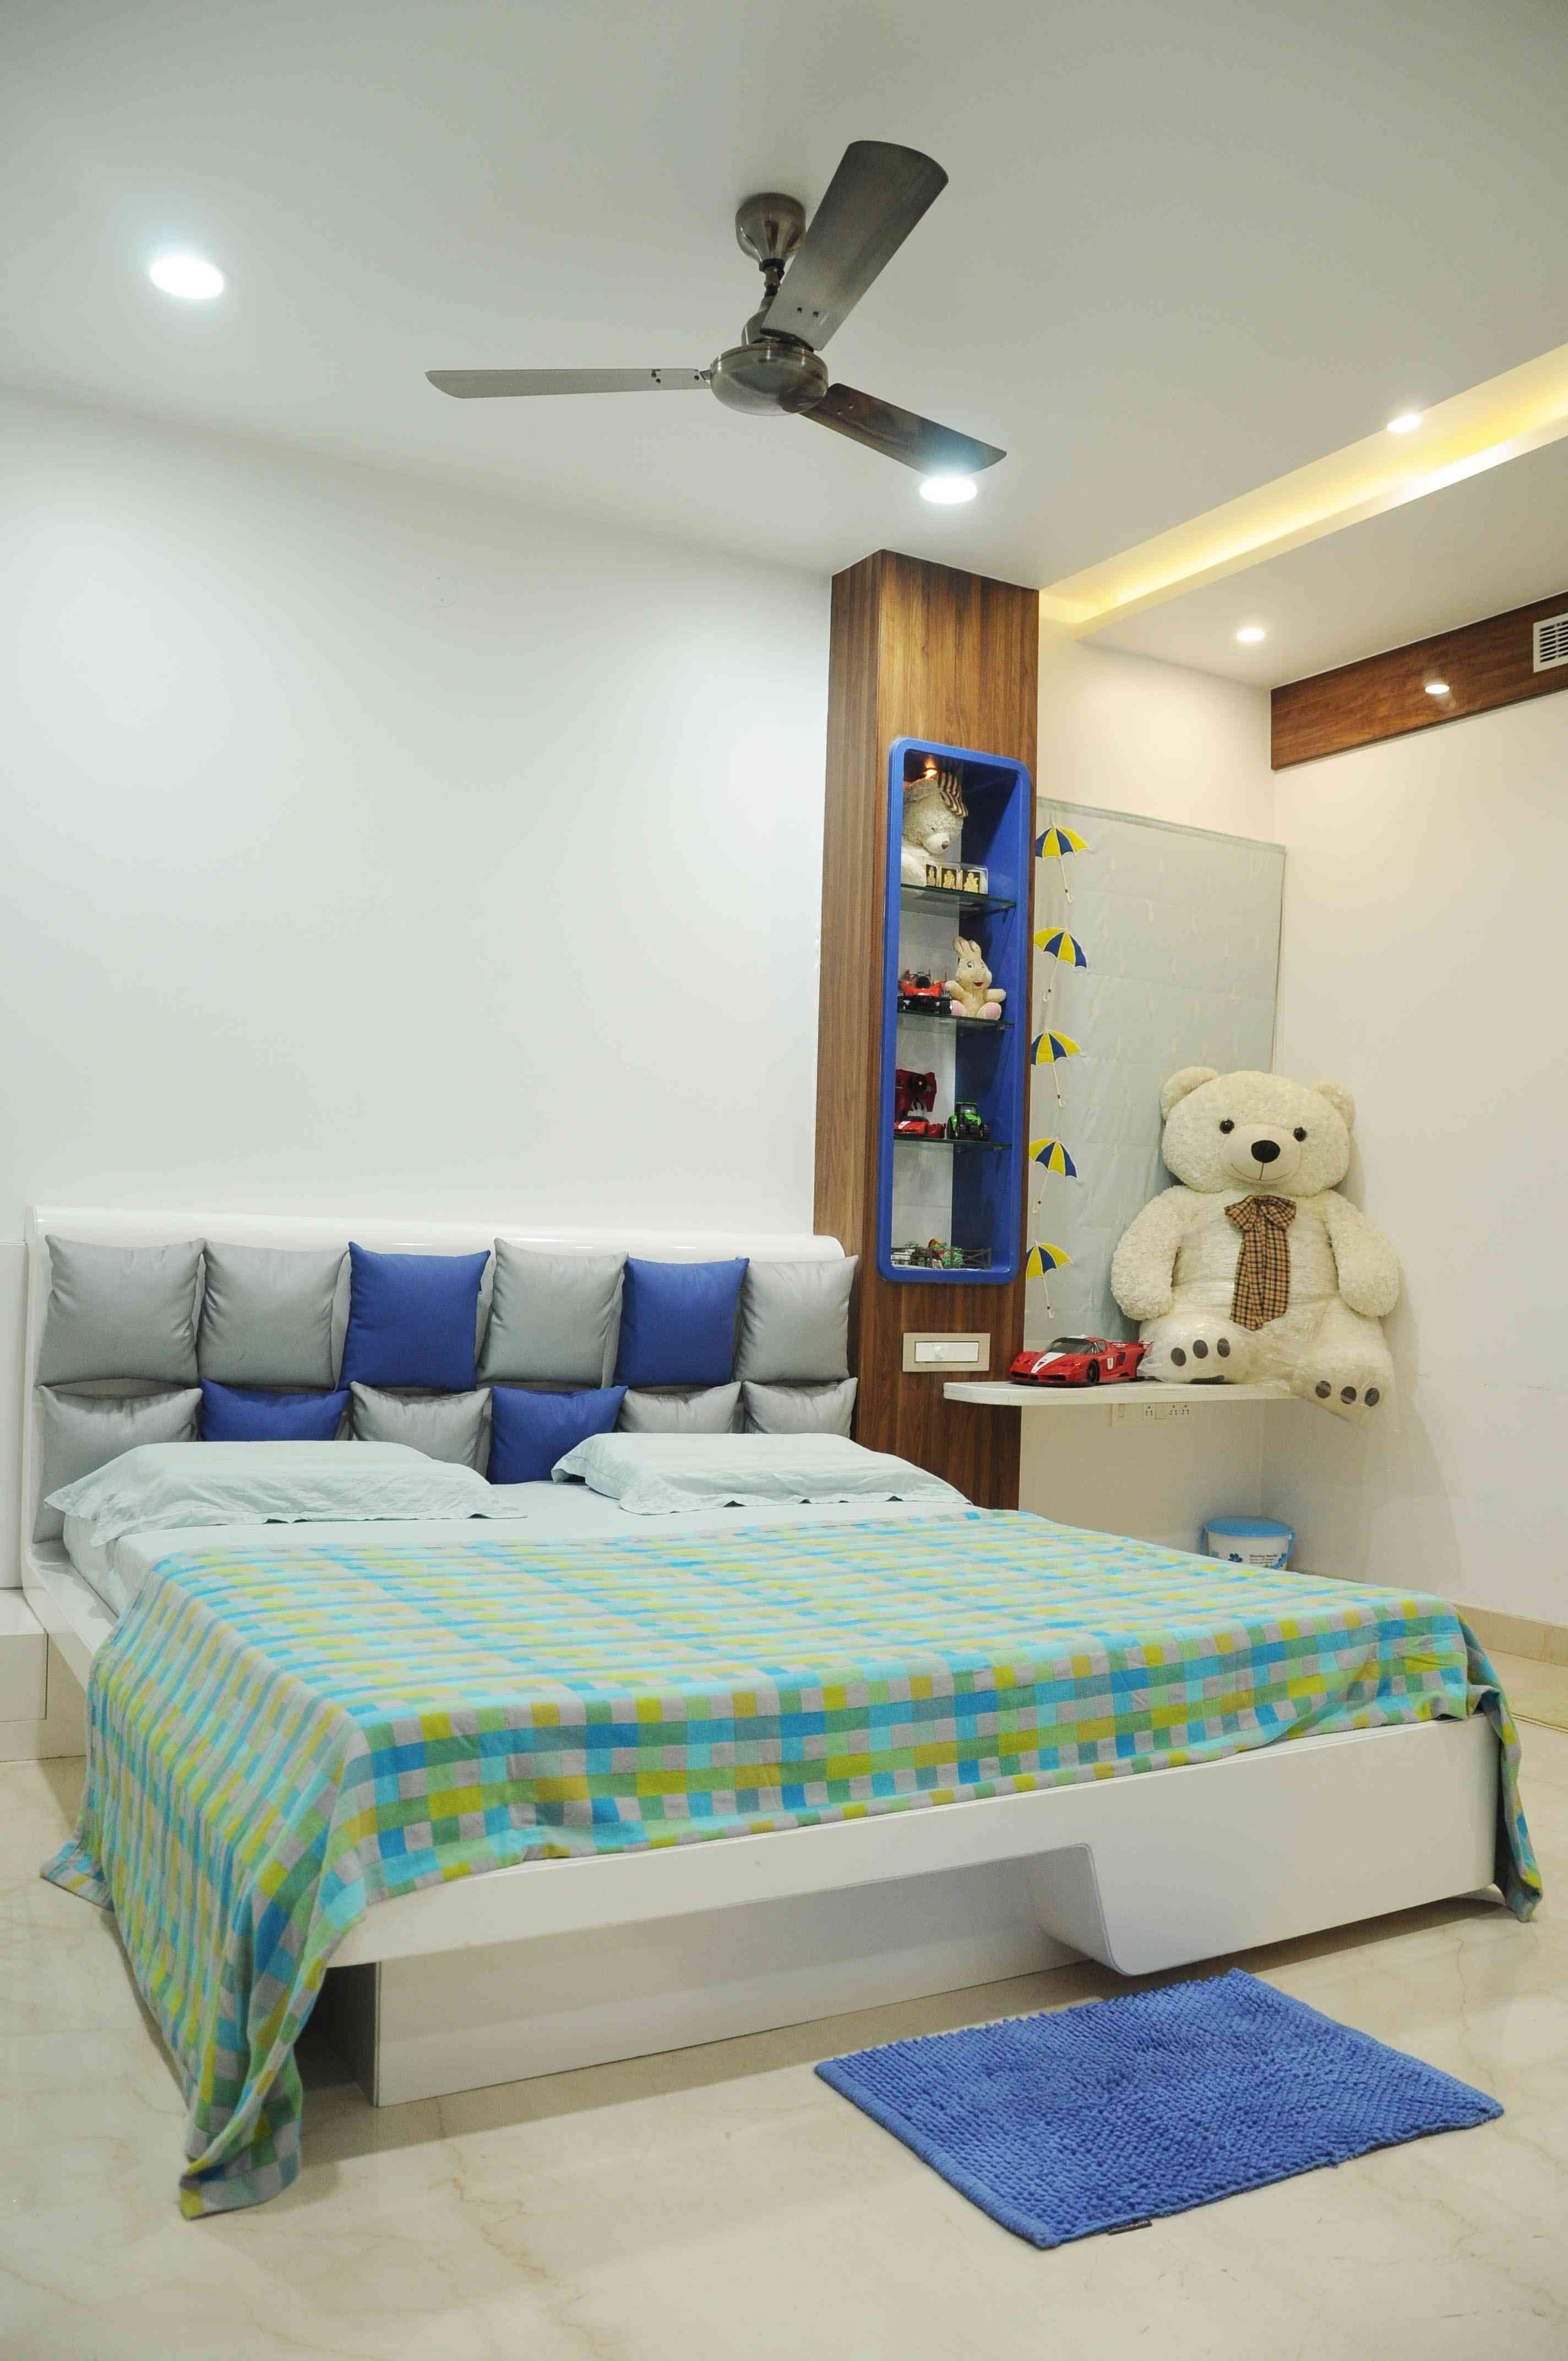 Kids Bedroom With Soft Toys Designed By Samanth Gowda Architect